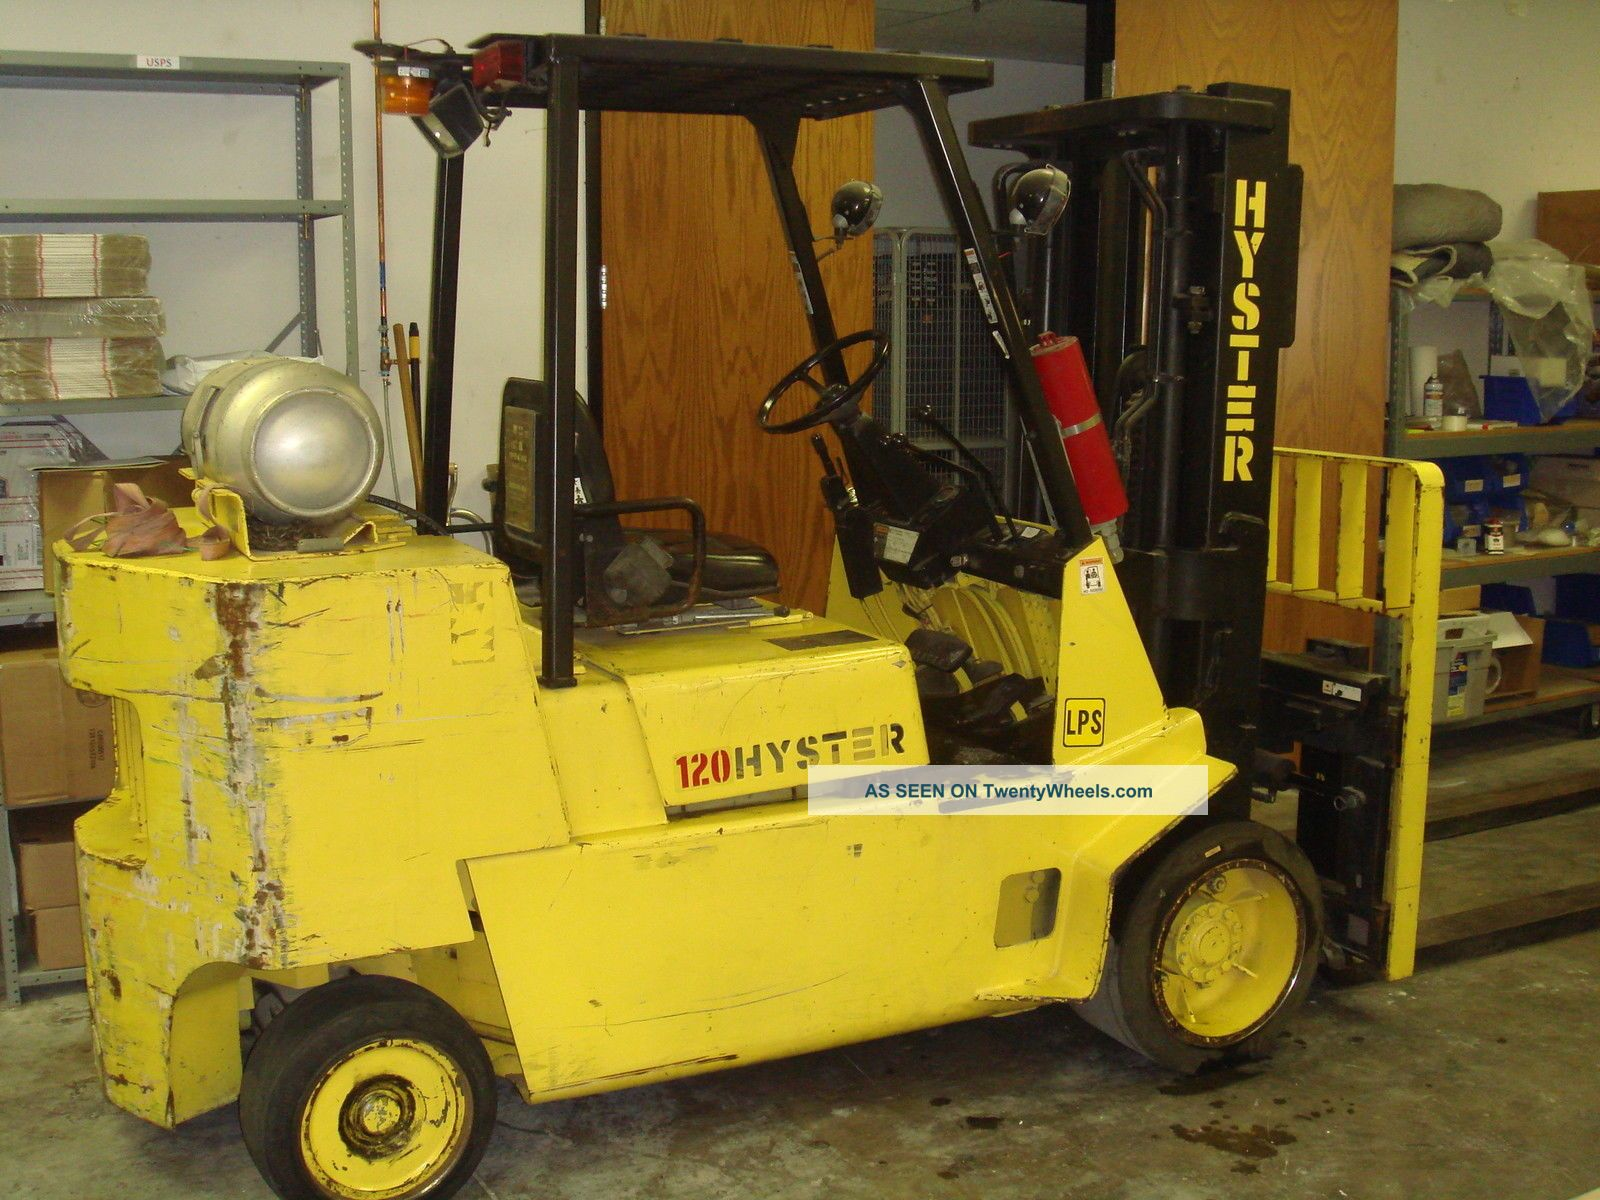 Fork Lift Foot : Hyster xls fork lift with foot forks